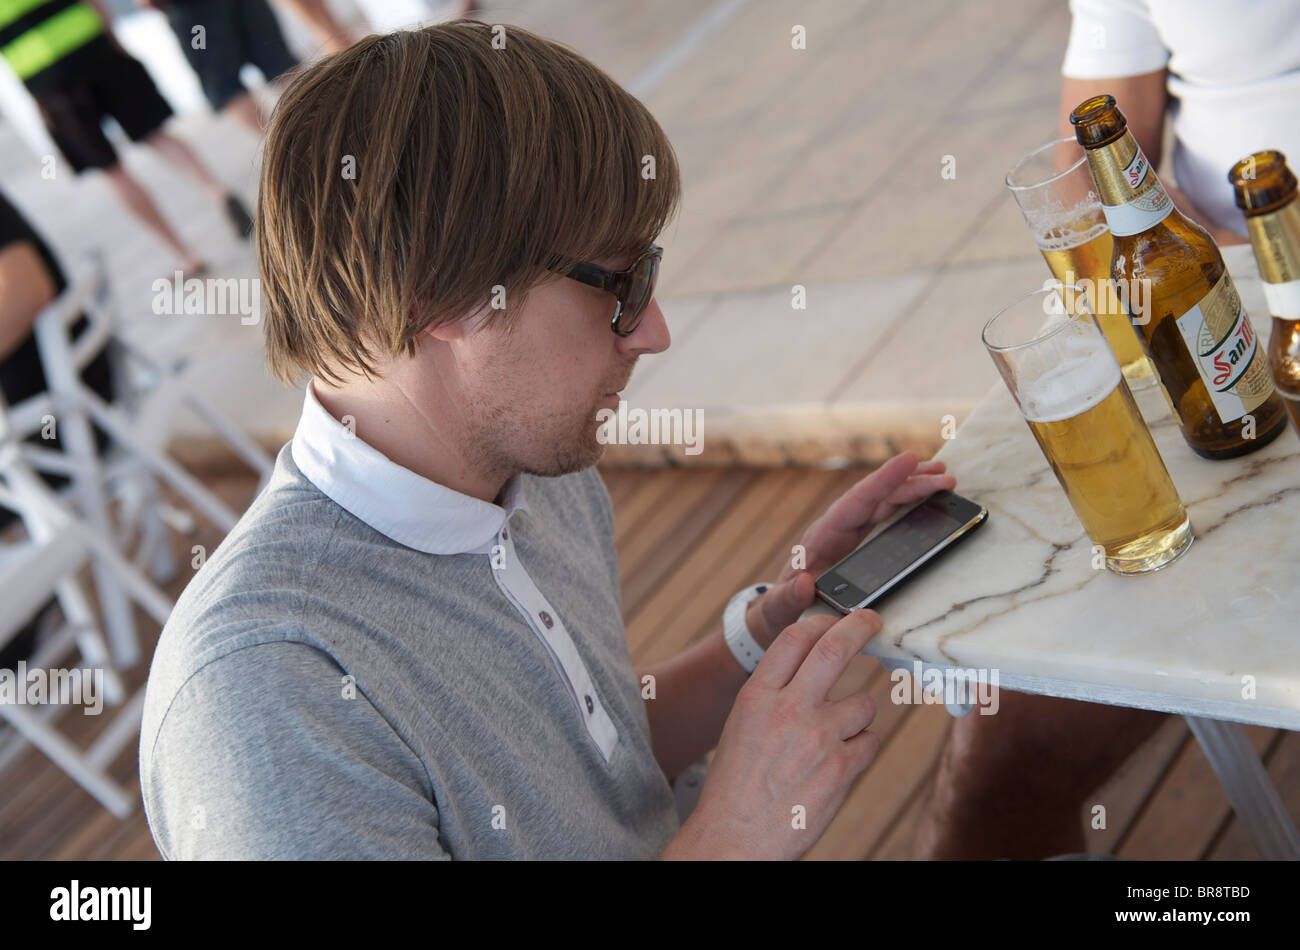 trendy young man using his iphone at cafe del mar, ibiza - Stock Image